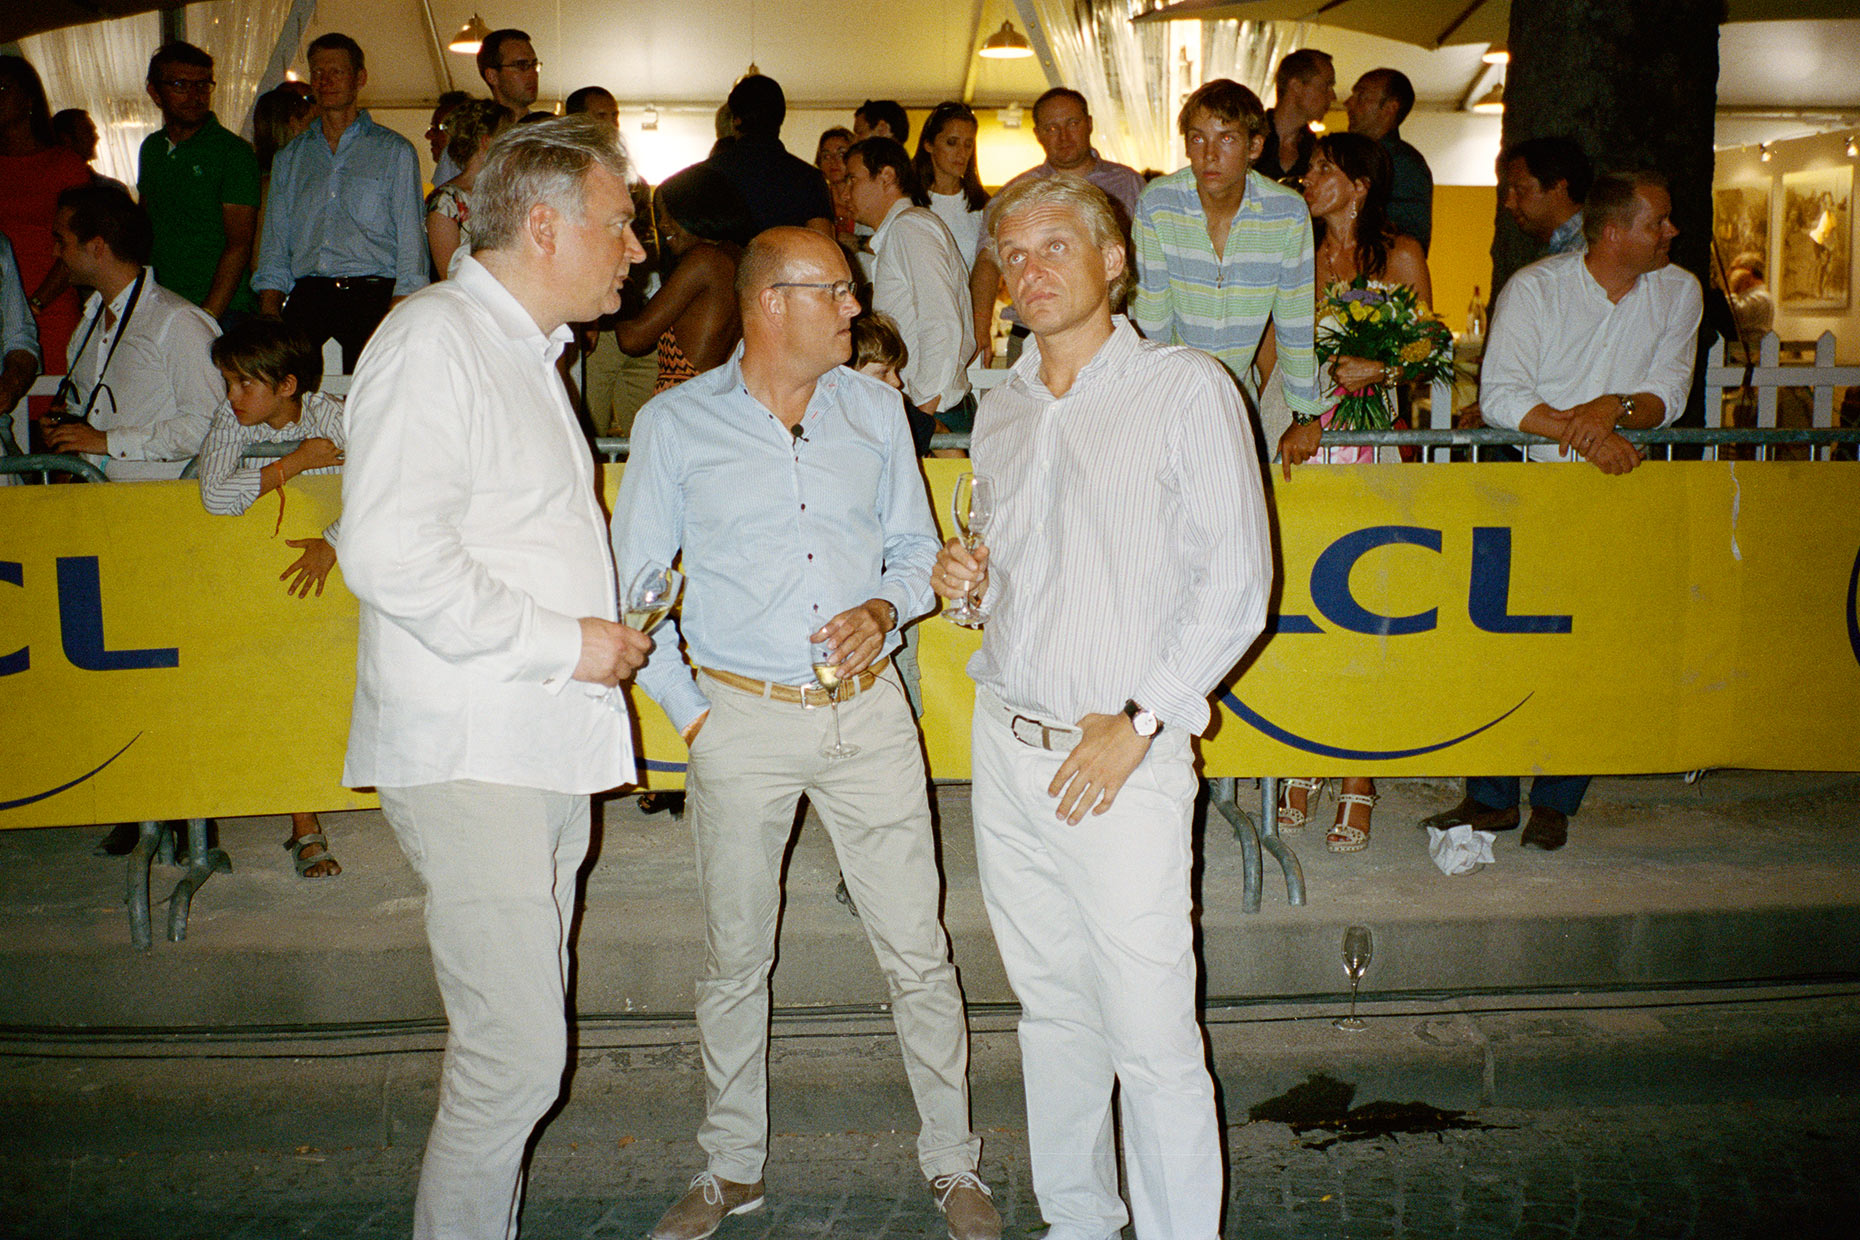 Lars, Bjarne and Oleg